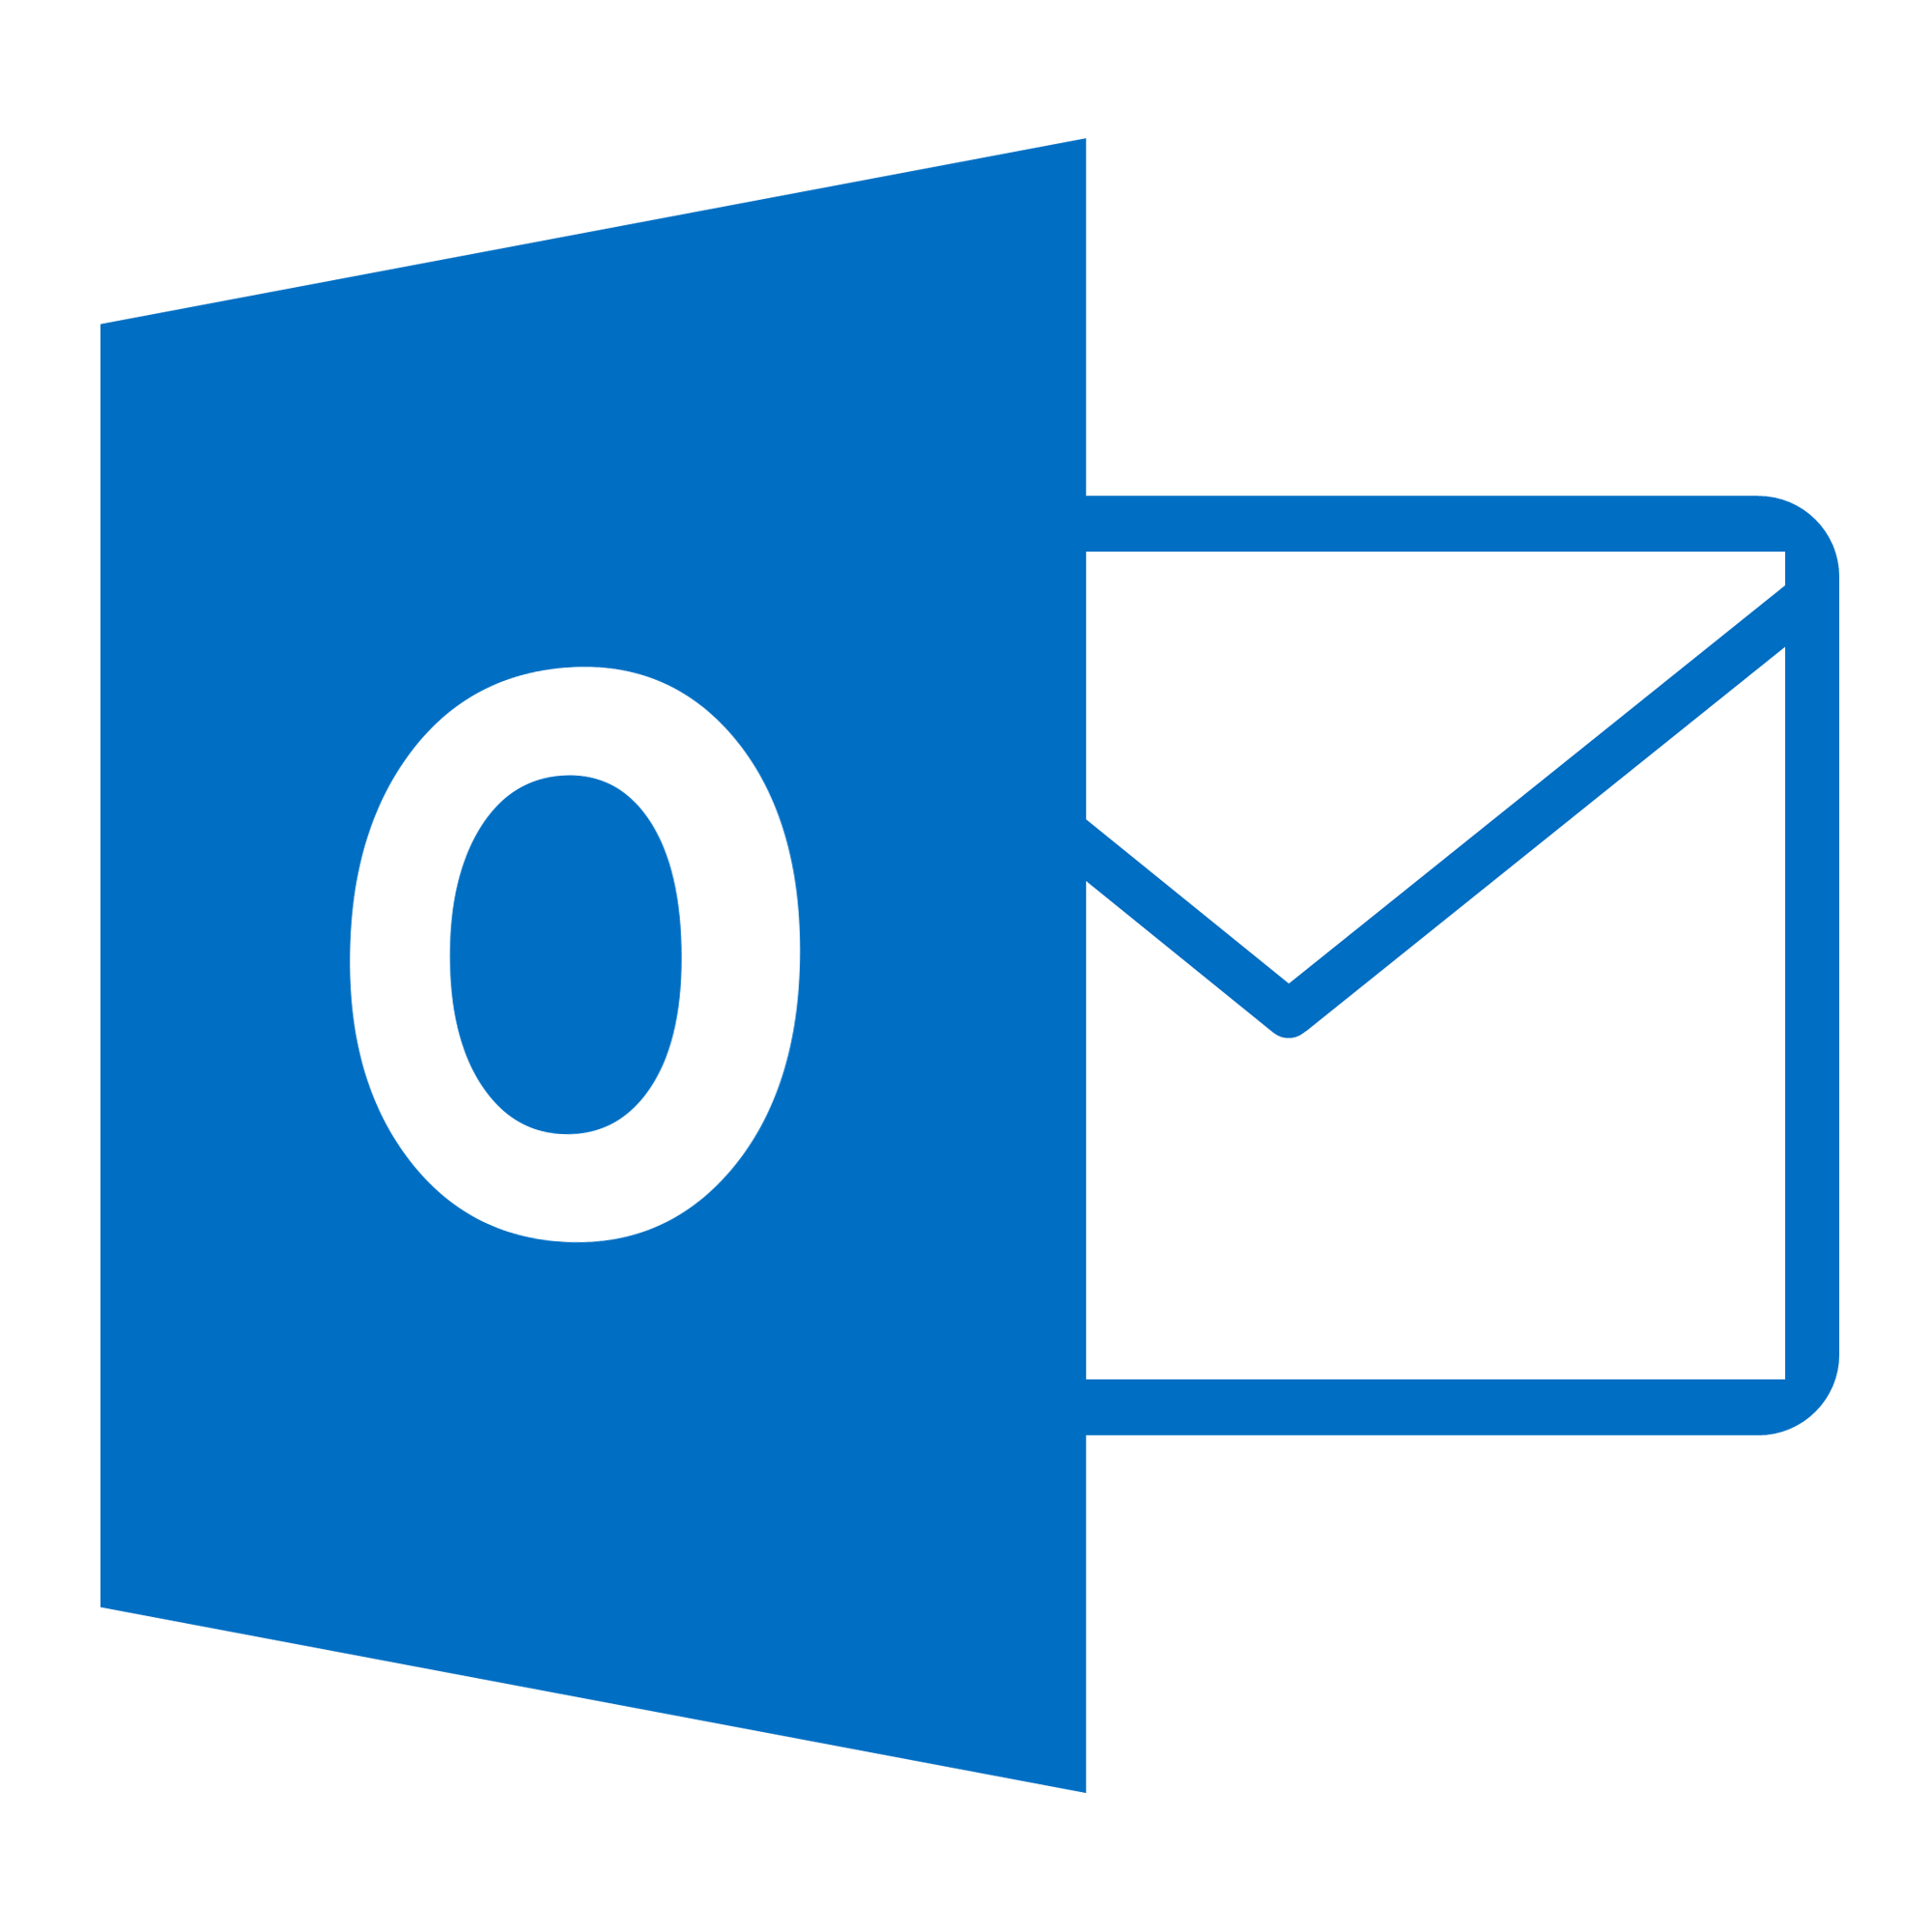 computer services worcester: Outlook icon